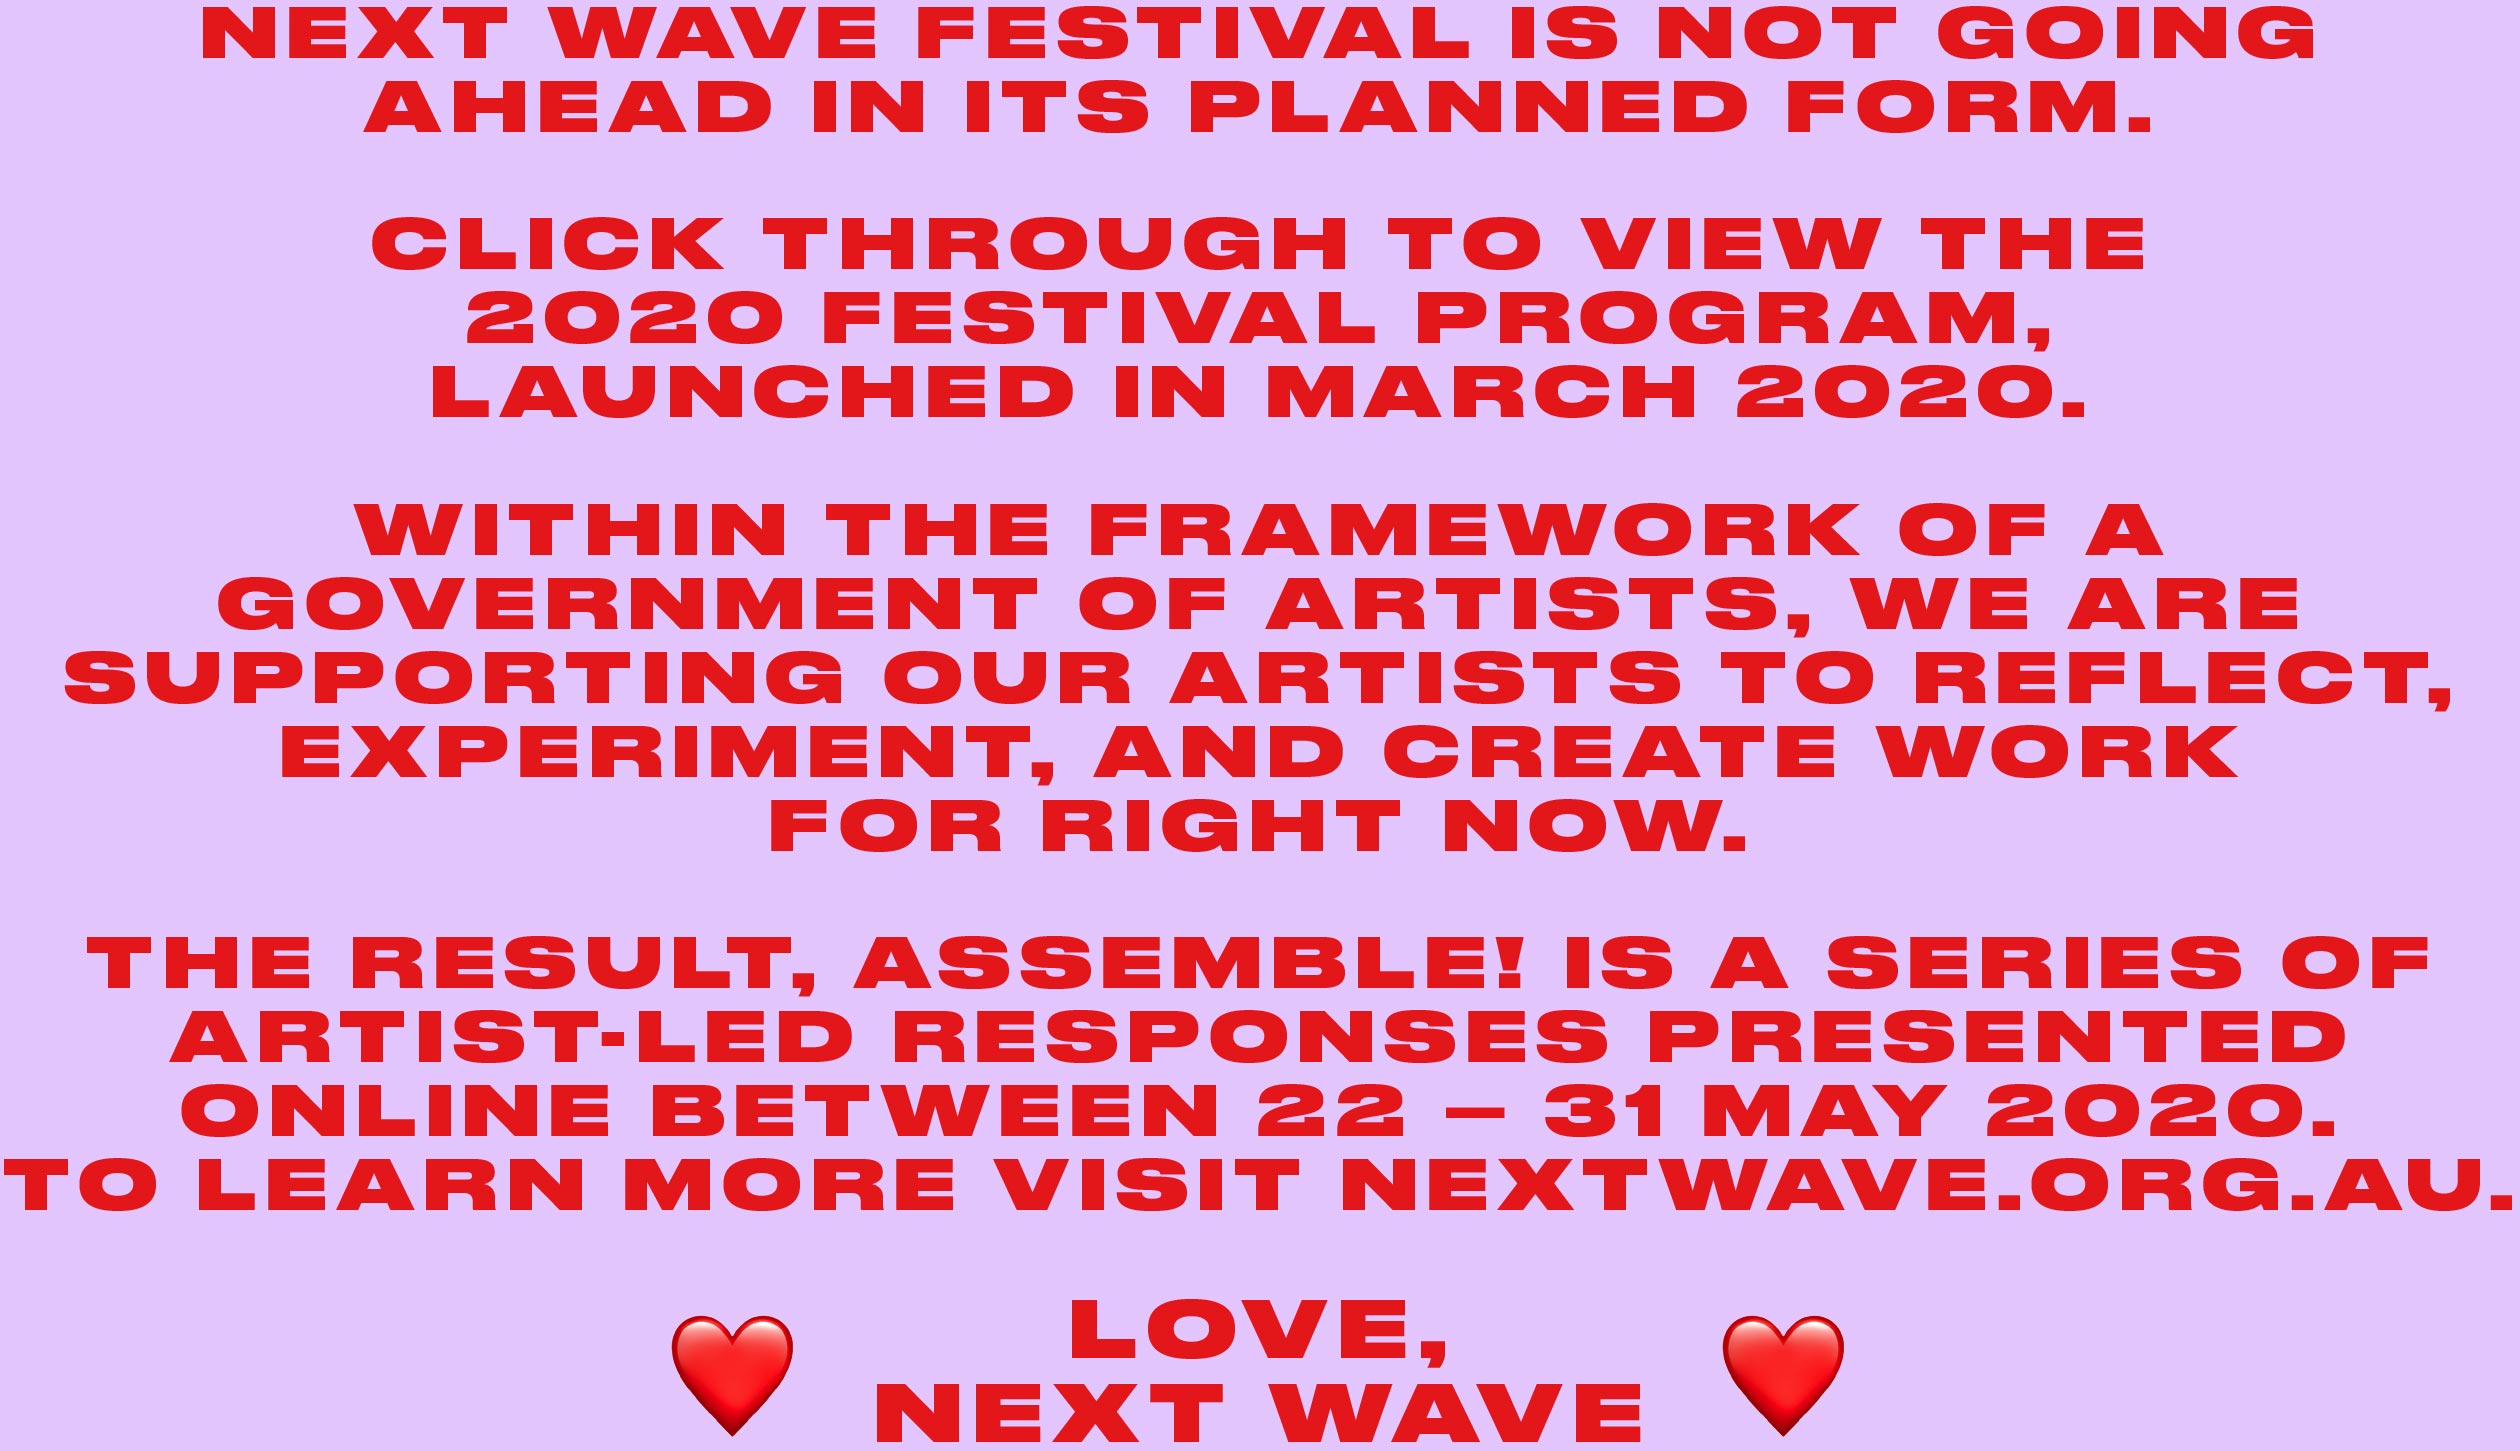 Next Wave Festival is not going ahead in its planned form. Click through to view the 2020 Festival Program, launched in March 2020. Within the framework of A Government of Artists, we are supporting our artists to reflect, experiment, and create work for right now. The result, Assemble! is a series of artist-led responses presented online between 22 – 31 May 2020. To learn more visit nextwave.org.au. Love, Next Wave